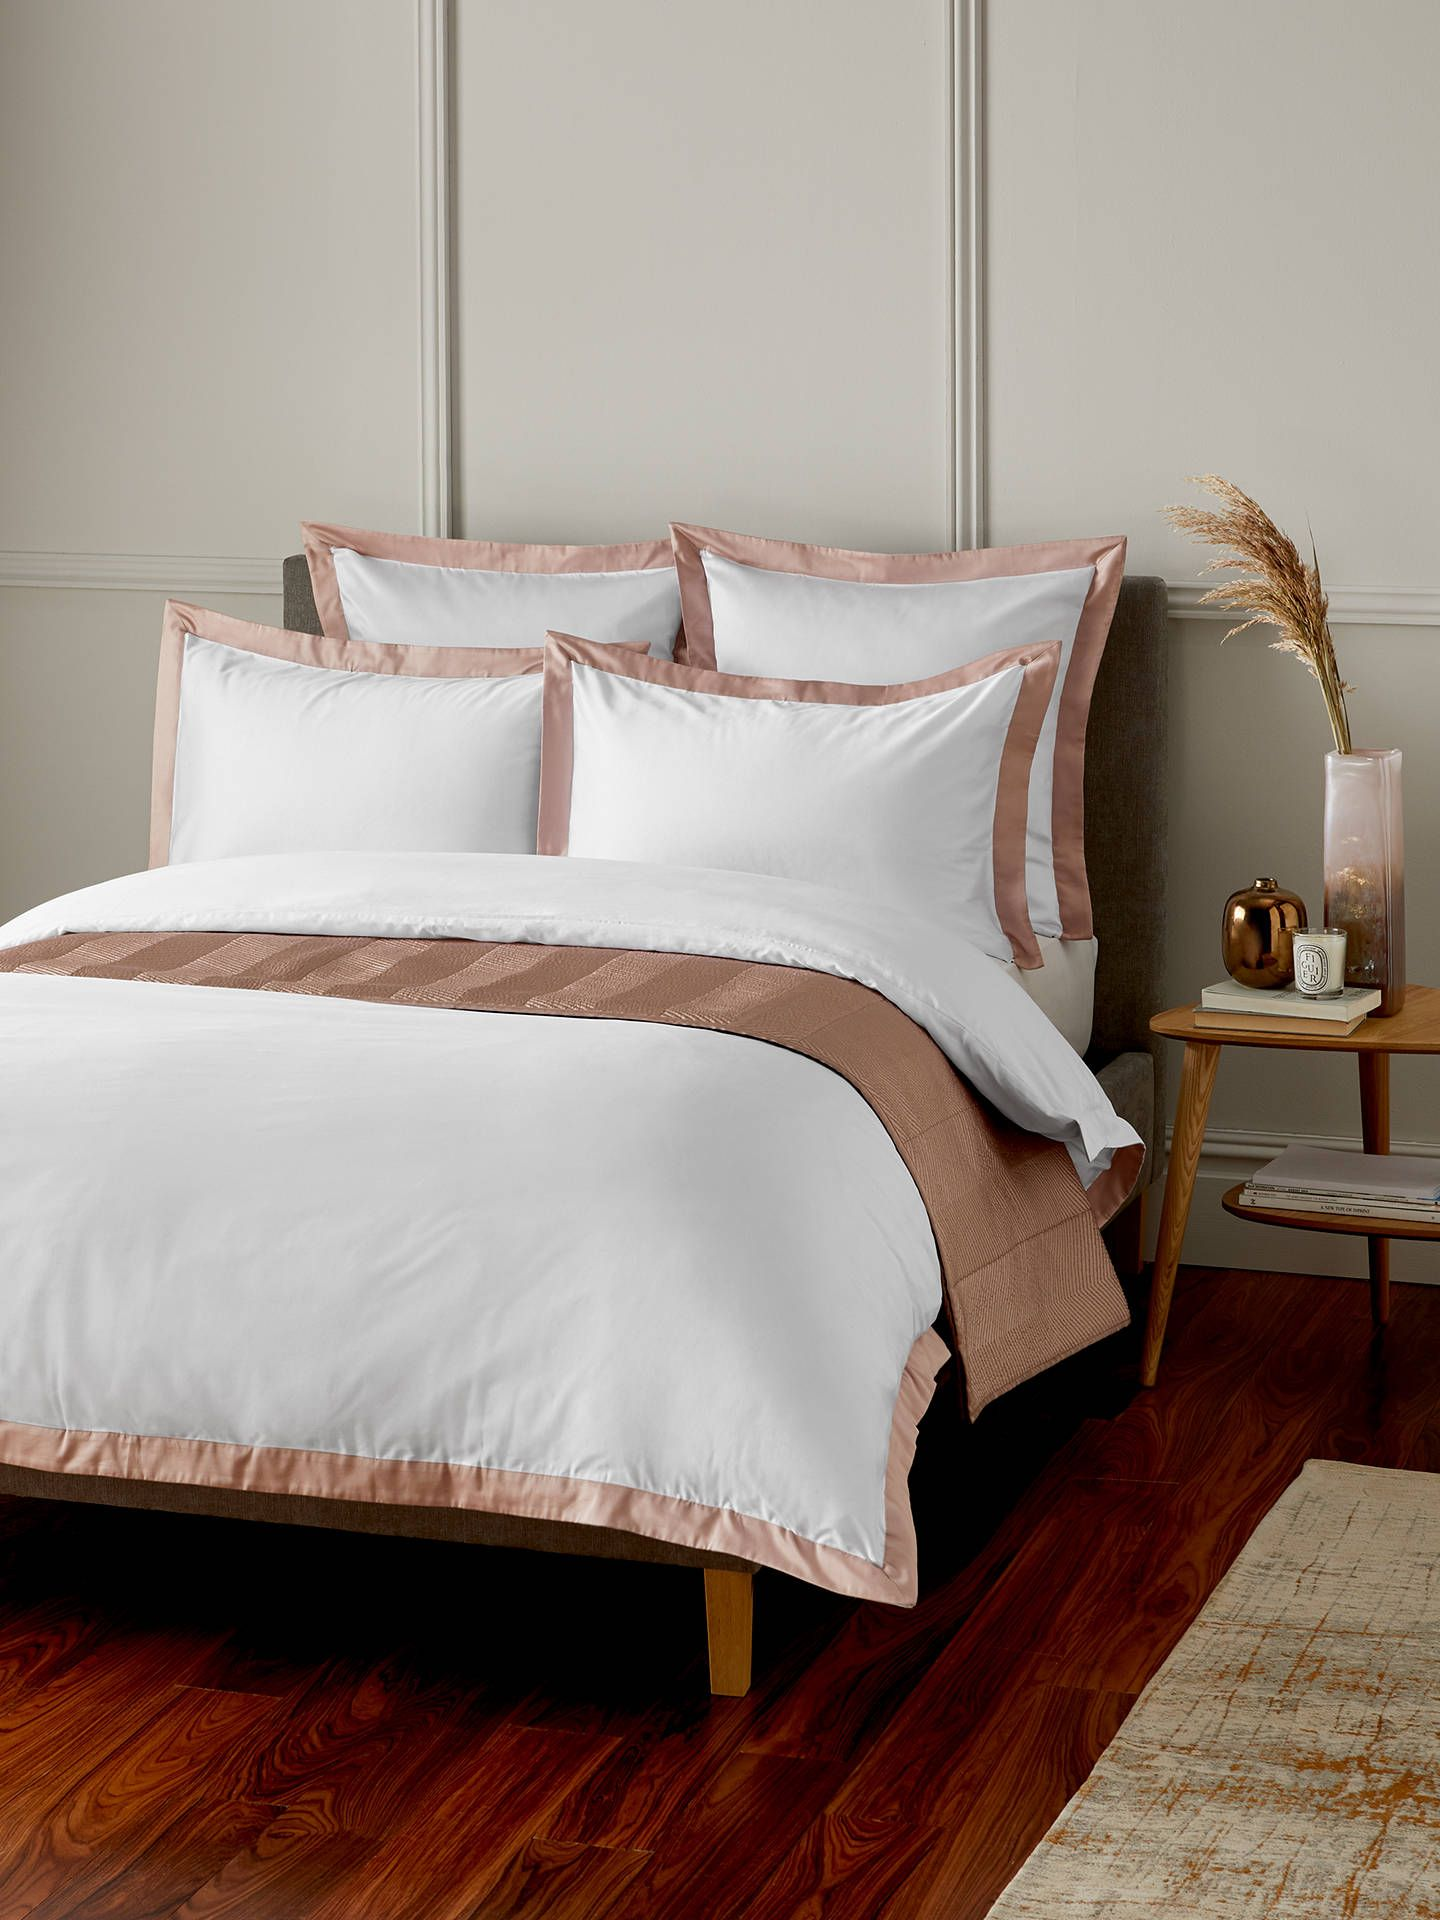 Egyptian Cotton Bedding The Best Sets In 2020